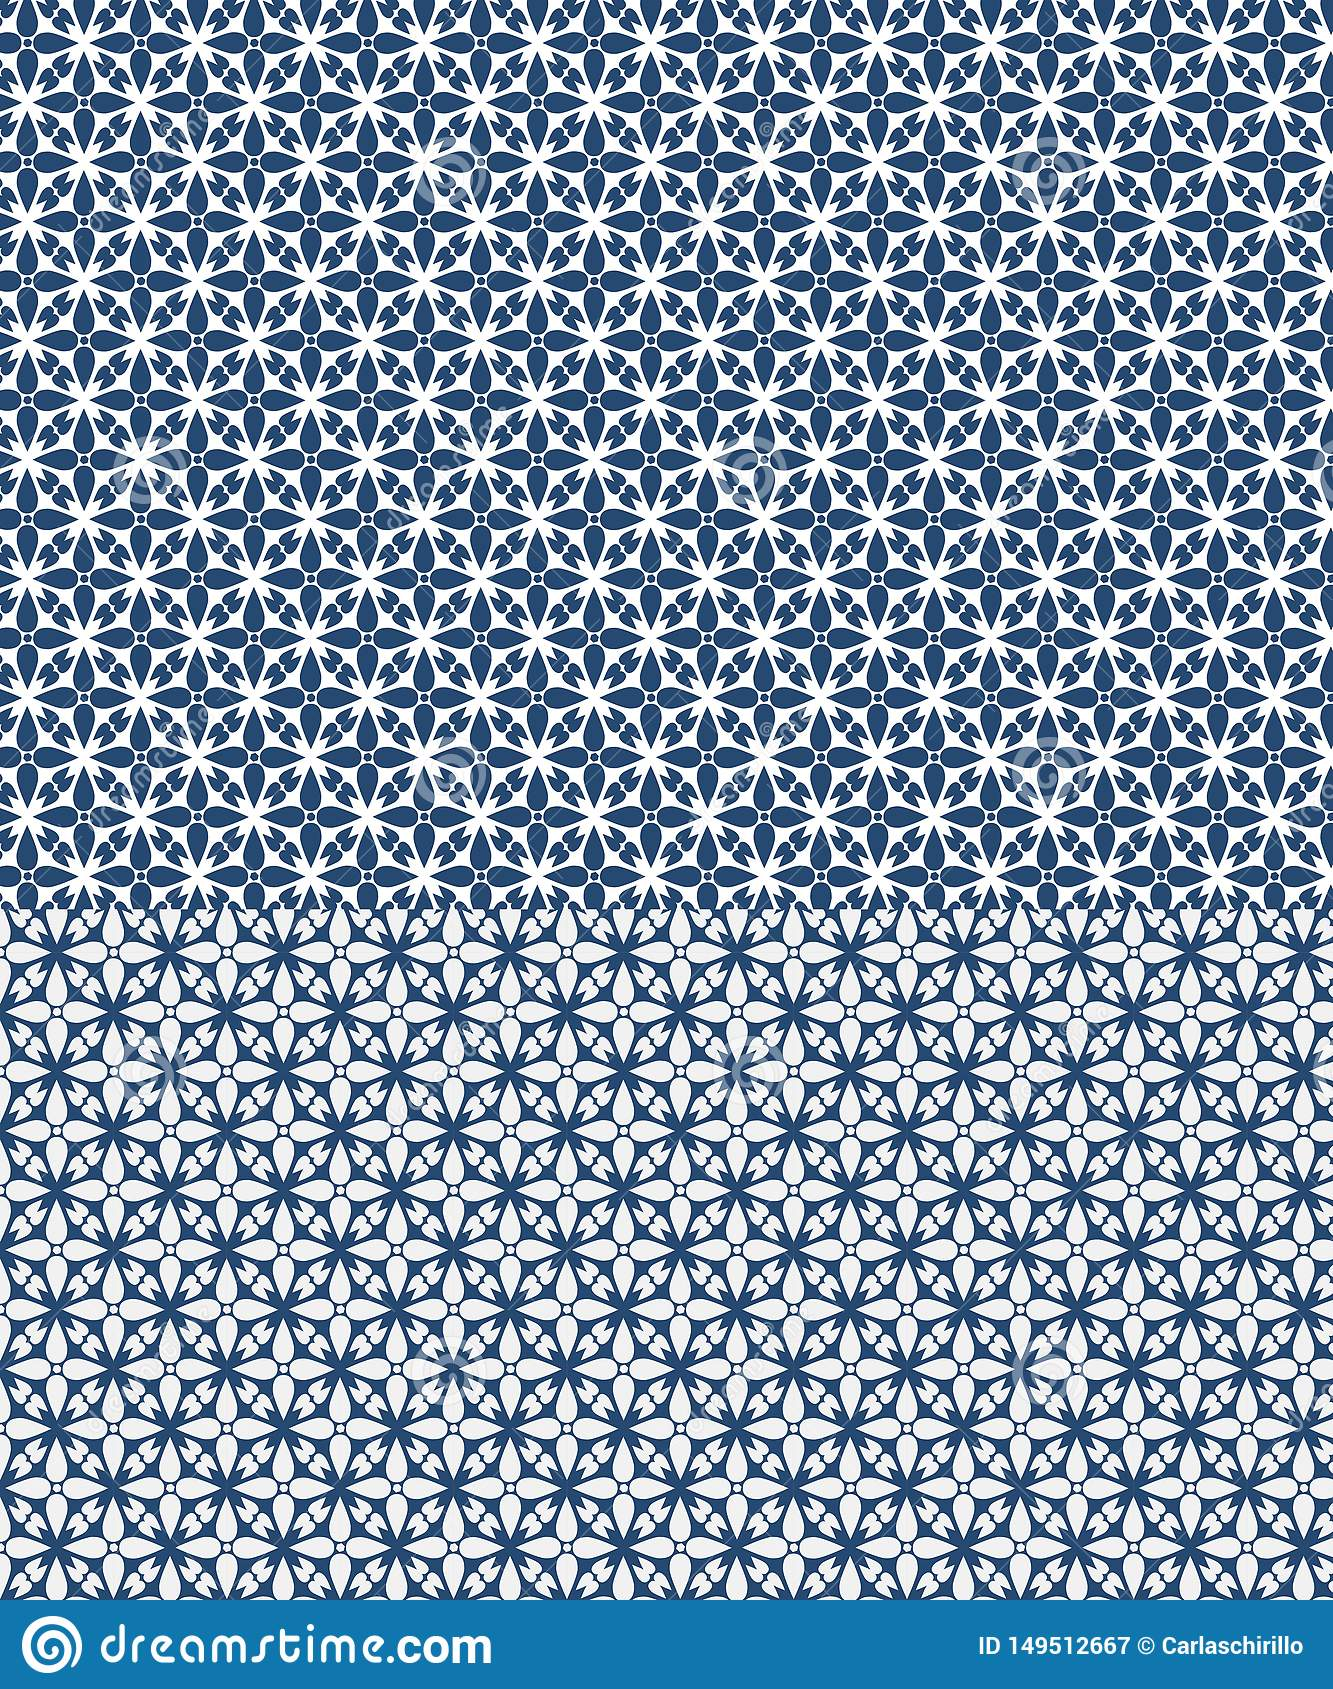 Floral vector seamless pattern inspired by azulejos